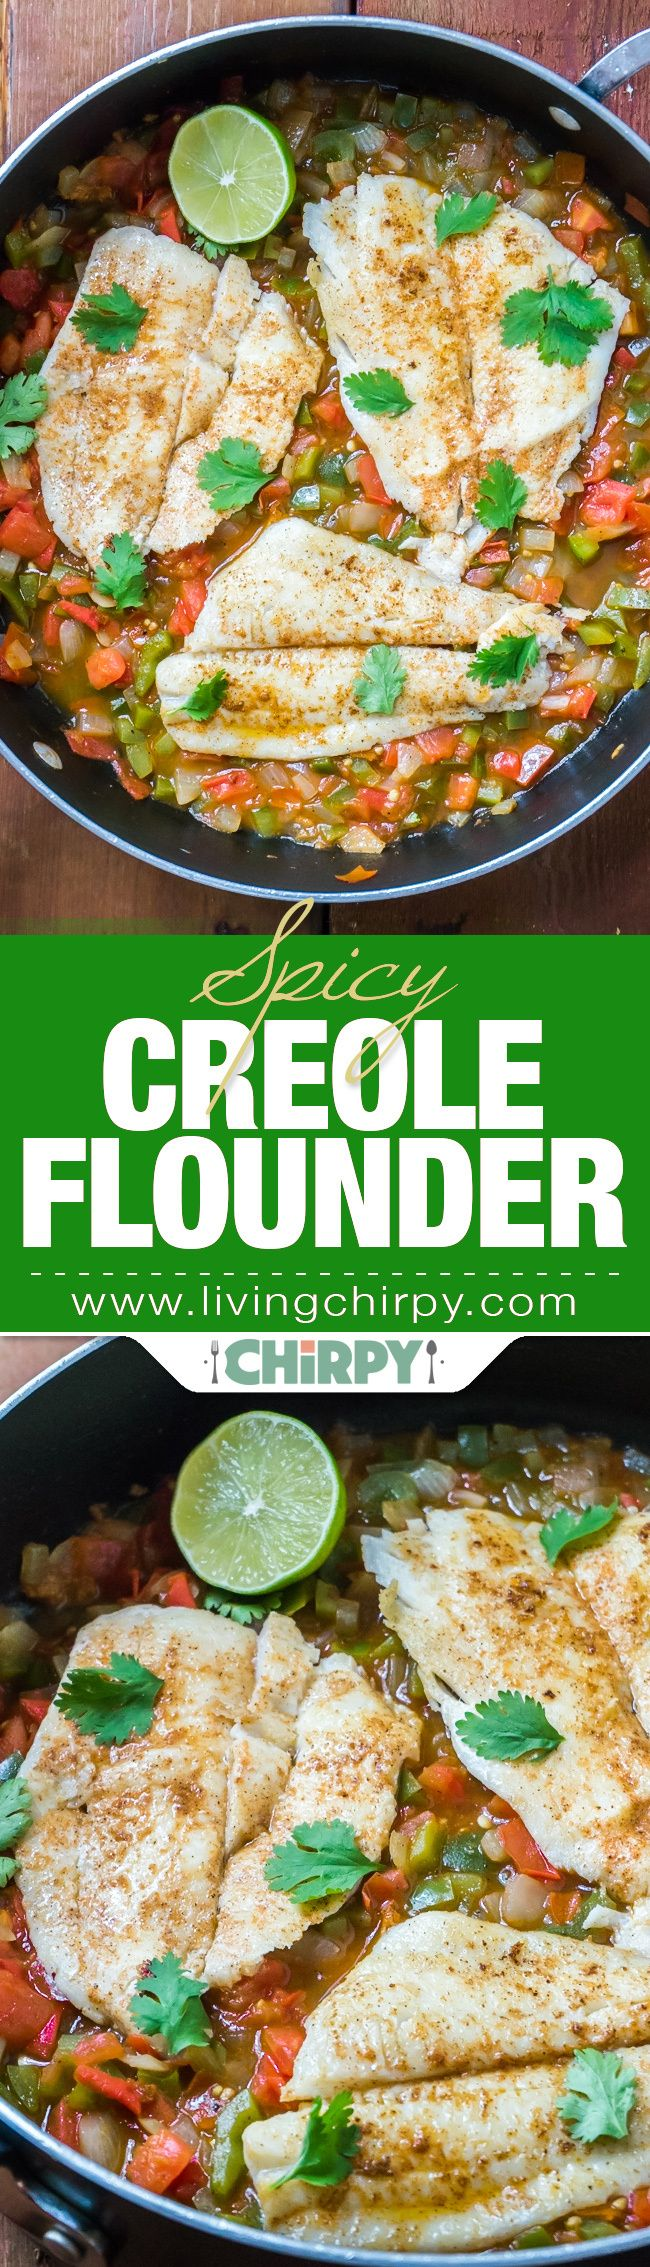 Spicy Creole Flounder, a quick, easy and tasteful way to prepare fish. Served with a warm tomato and green pepper salsa. A light and healthy low-carb dish.